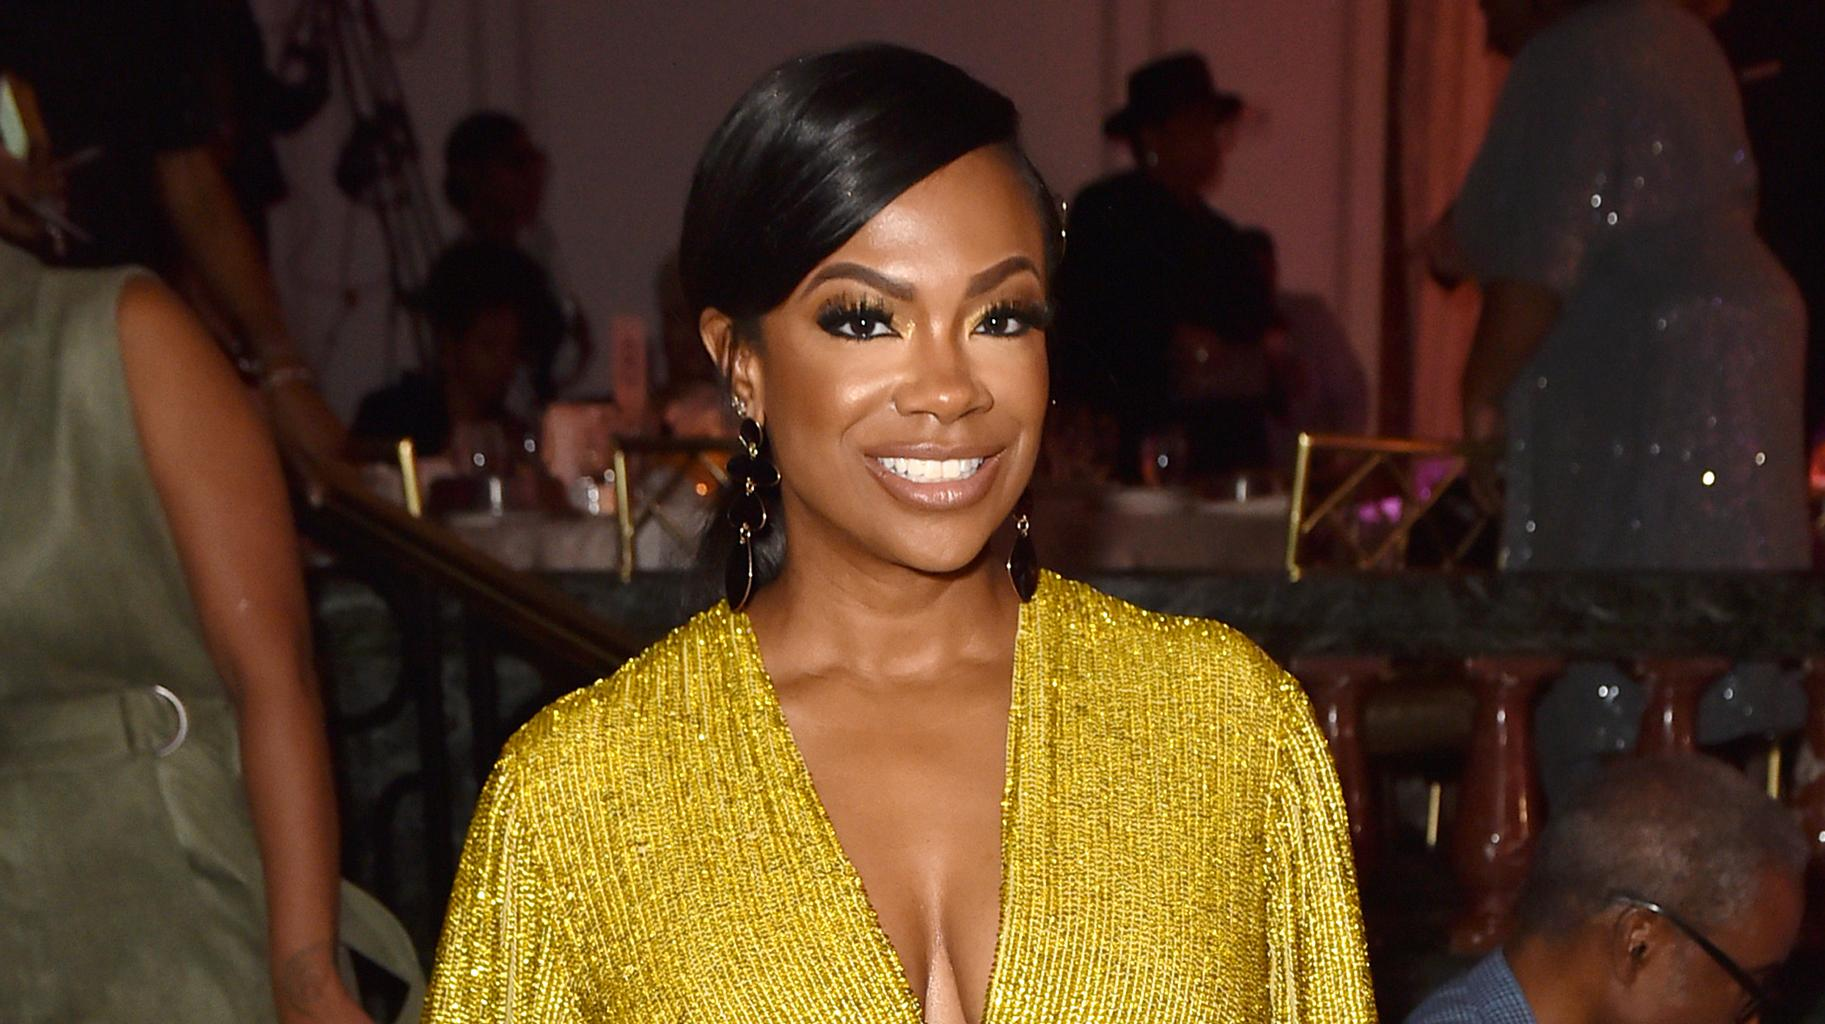 Kandi Burruss Enjoys The Best Weekend With Riley Burruss Who Is Sporting Her New Hair - Mama Joyce And Todd Tucker Celebrate Together!